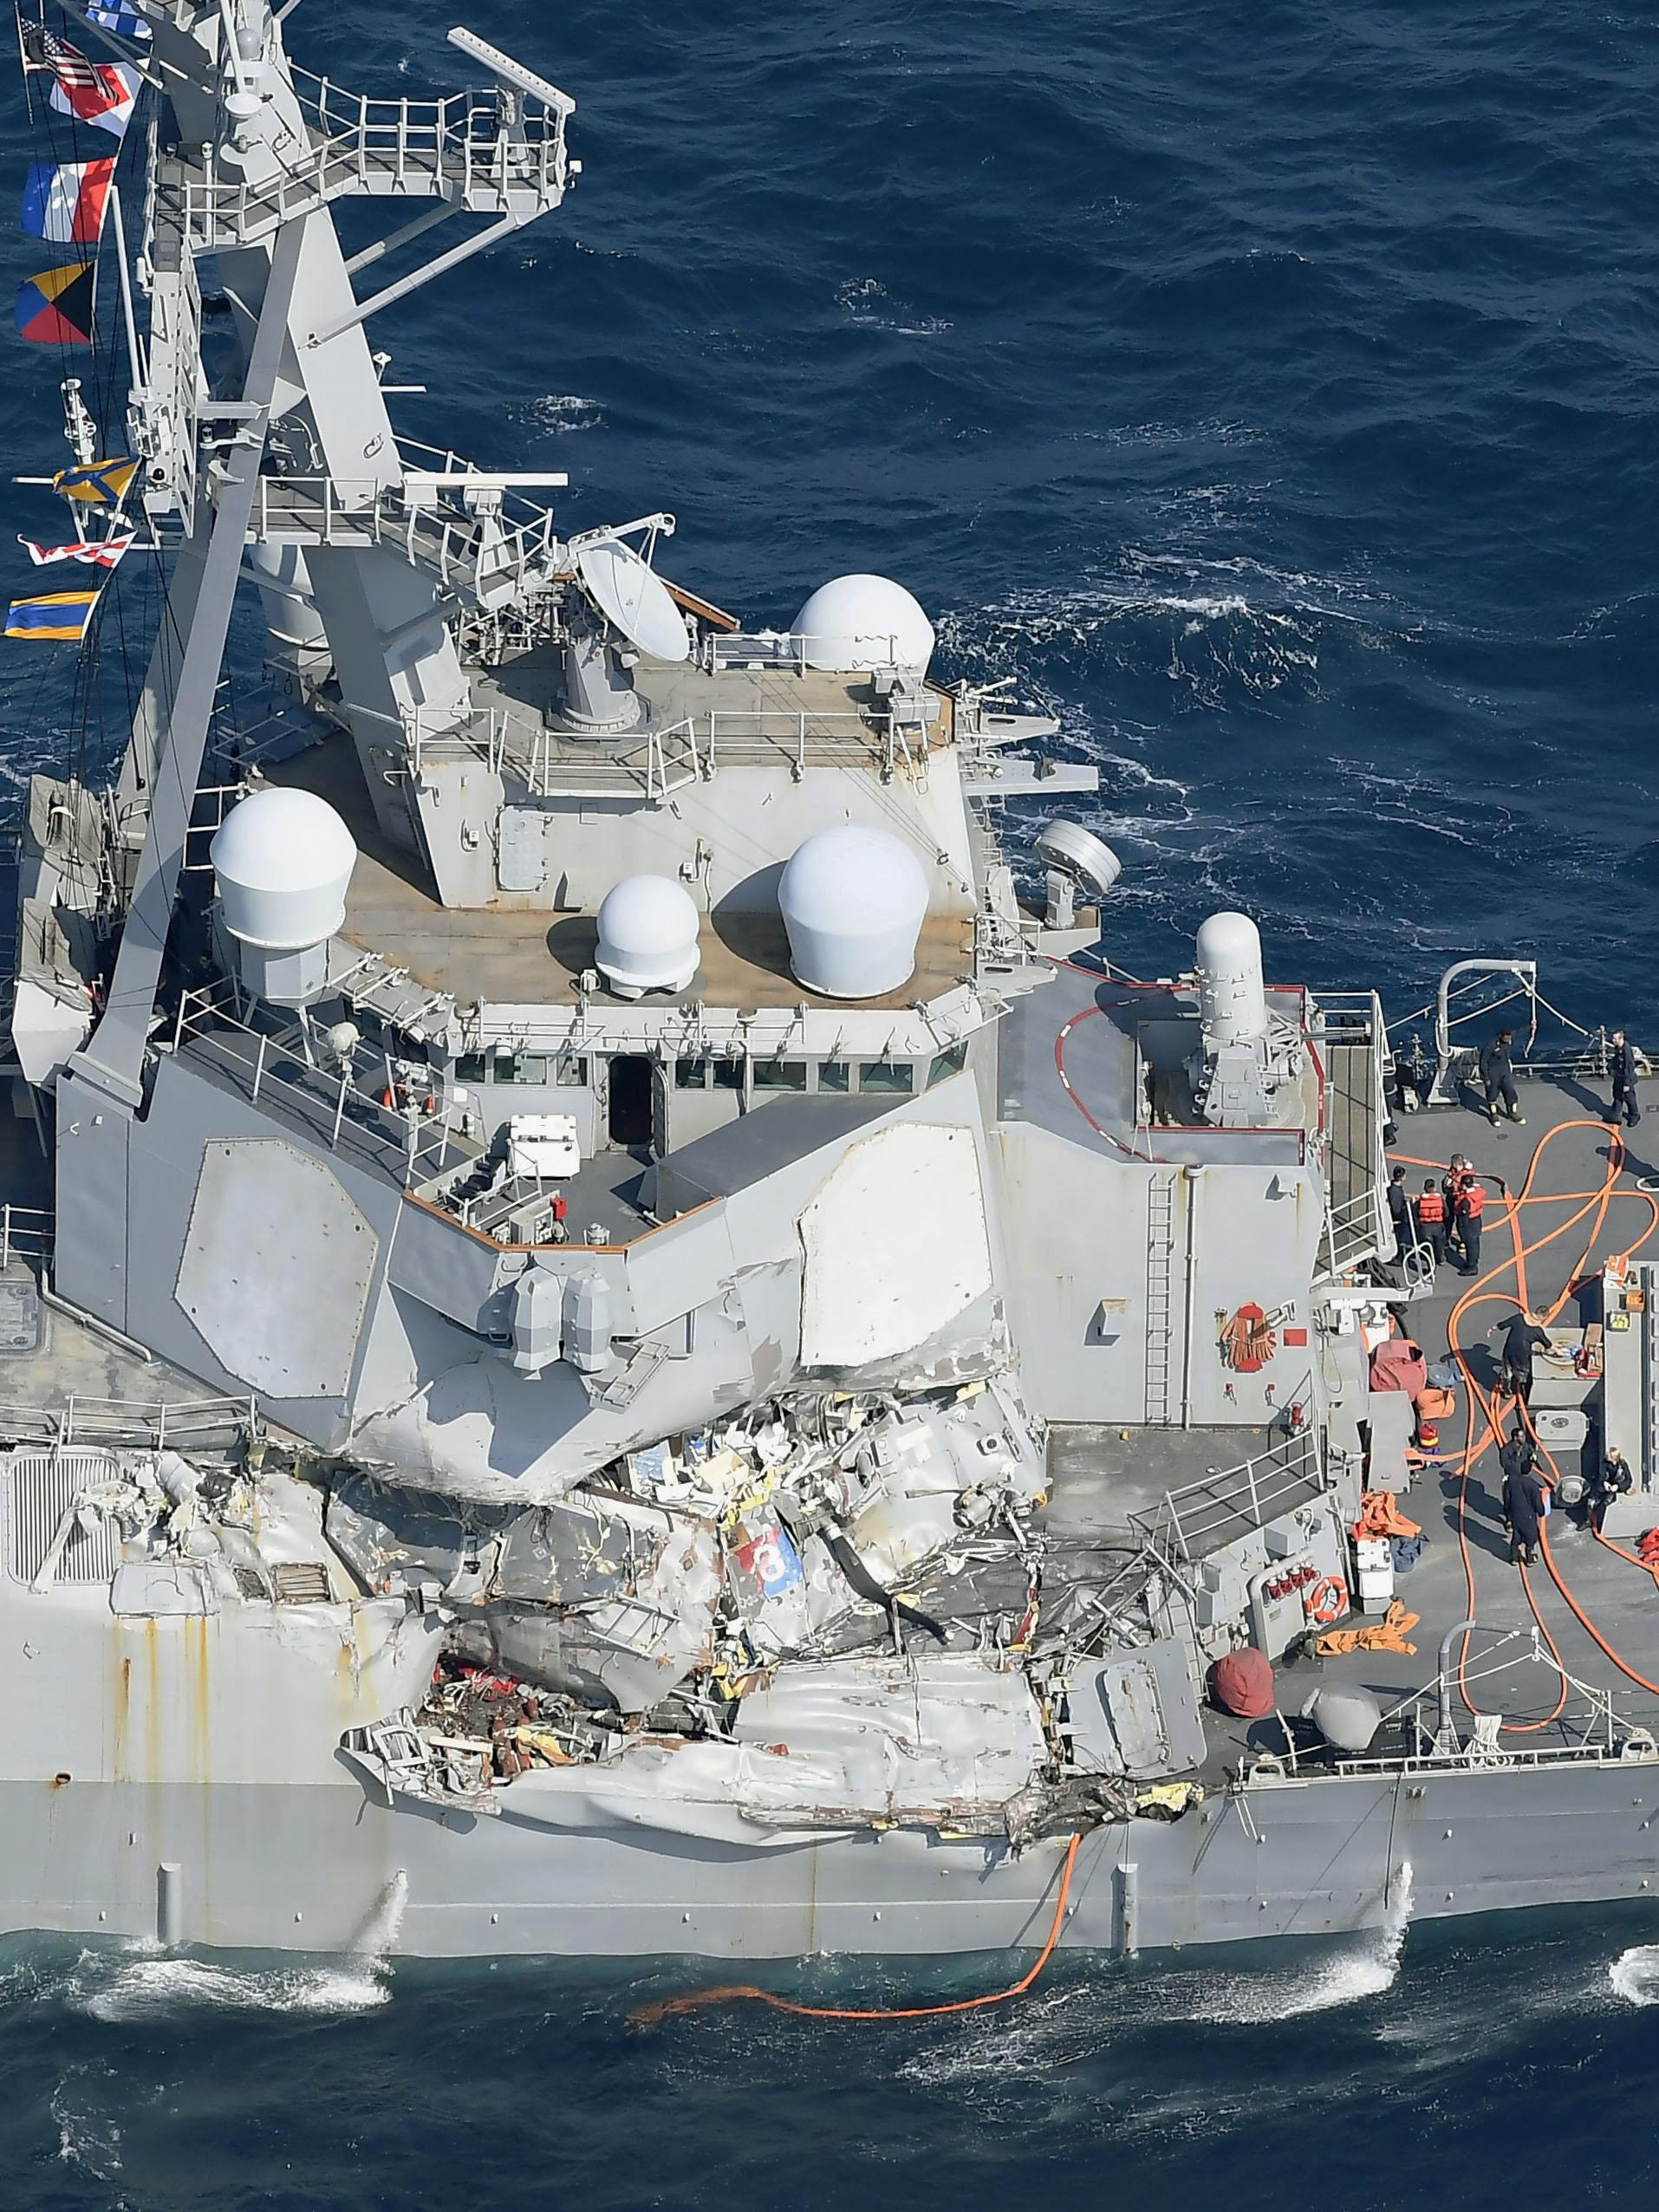 CORRECTS DATE  - The damage of the right side of the USS Fitzgerald is seen off Shimoda, Shizuoka prefecture, Japan, after the Navy destroyer collided with a merchant ship, Saturday, June 17, 2017.  The U.S. Navy says the USS Fitzgerald suffered damage below the water line on its starboard side after it collided with a Philippine-flagged merchant ship.  (Iori Sagisawa/Kyodo News via AP)